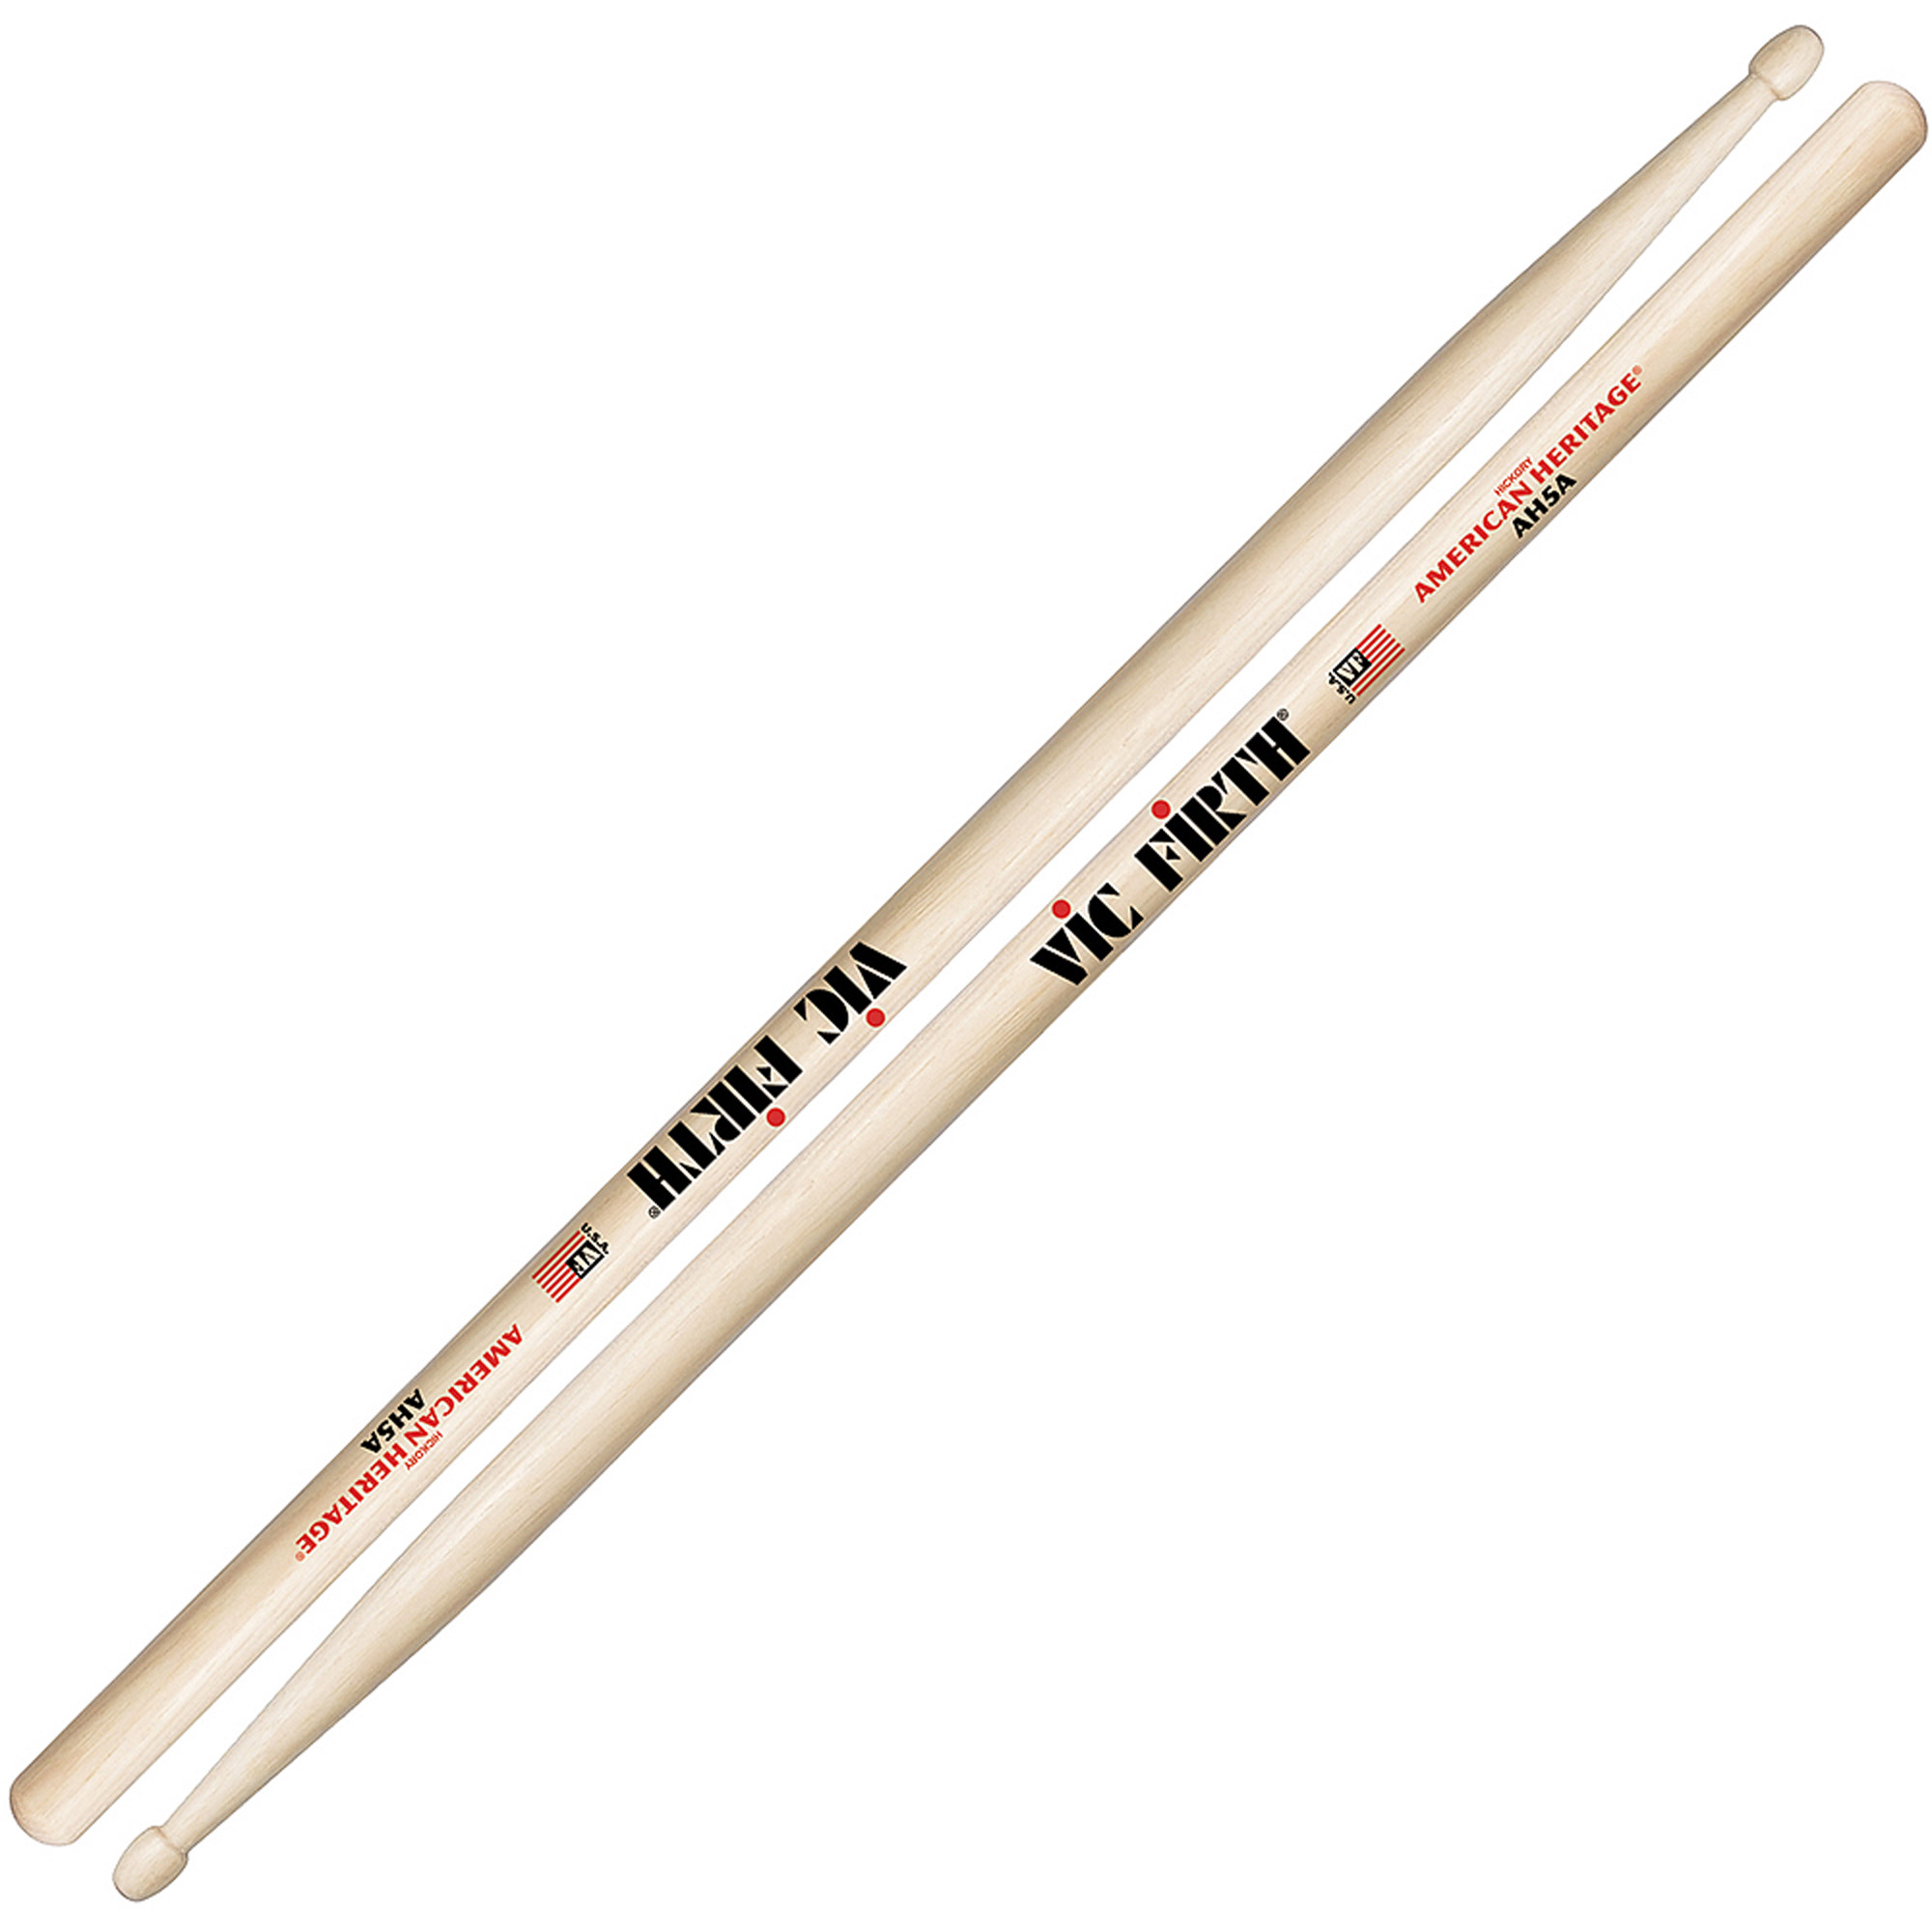 Vic Firth AH5A American Heritage Wood Tip Drumsticks by Vic Firth